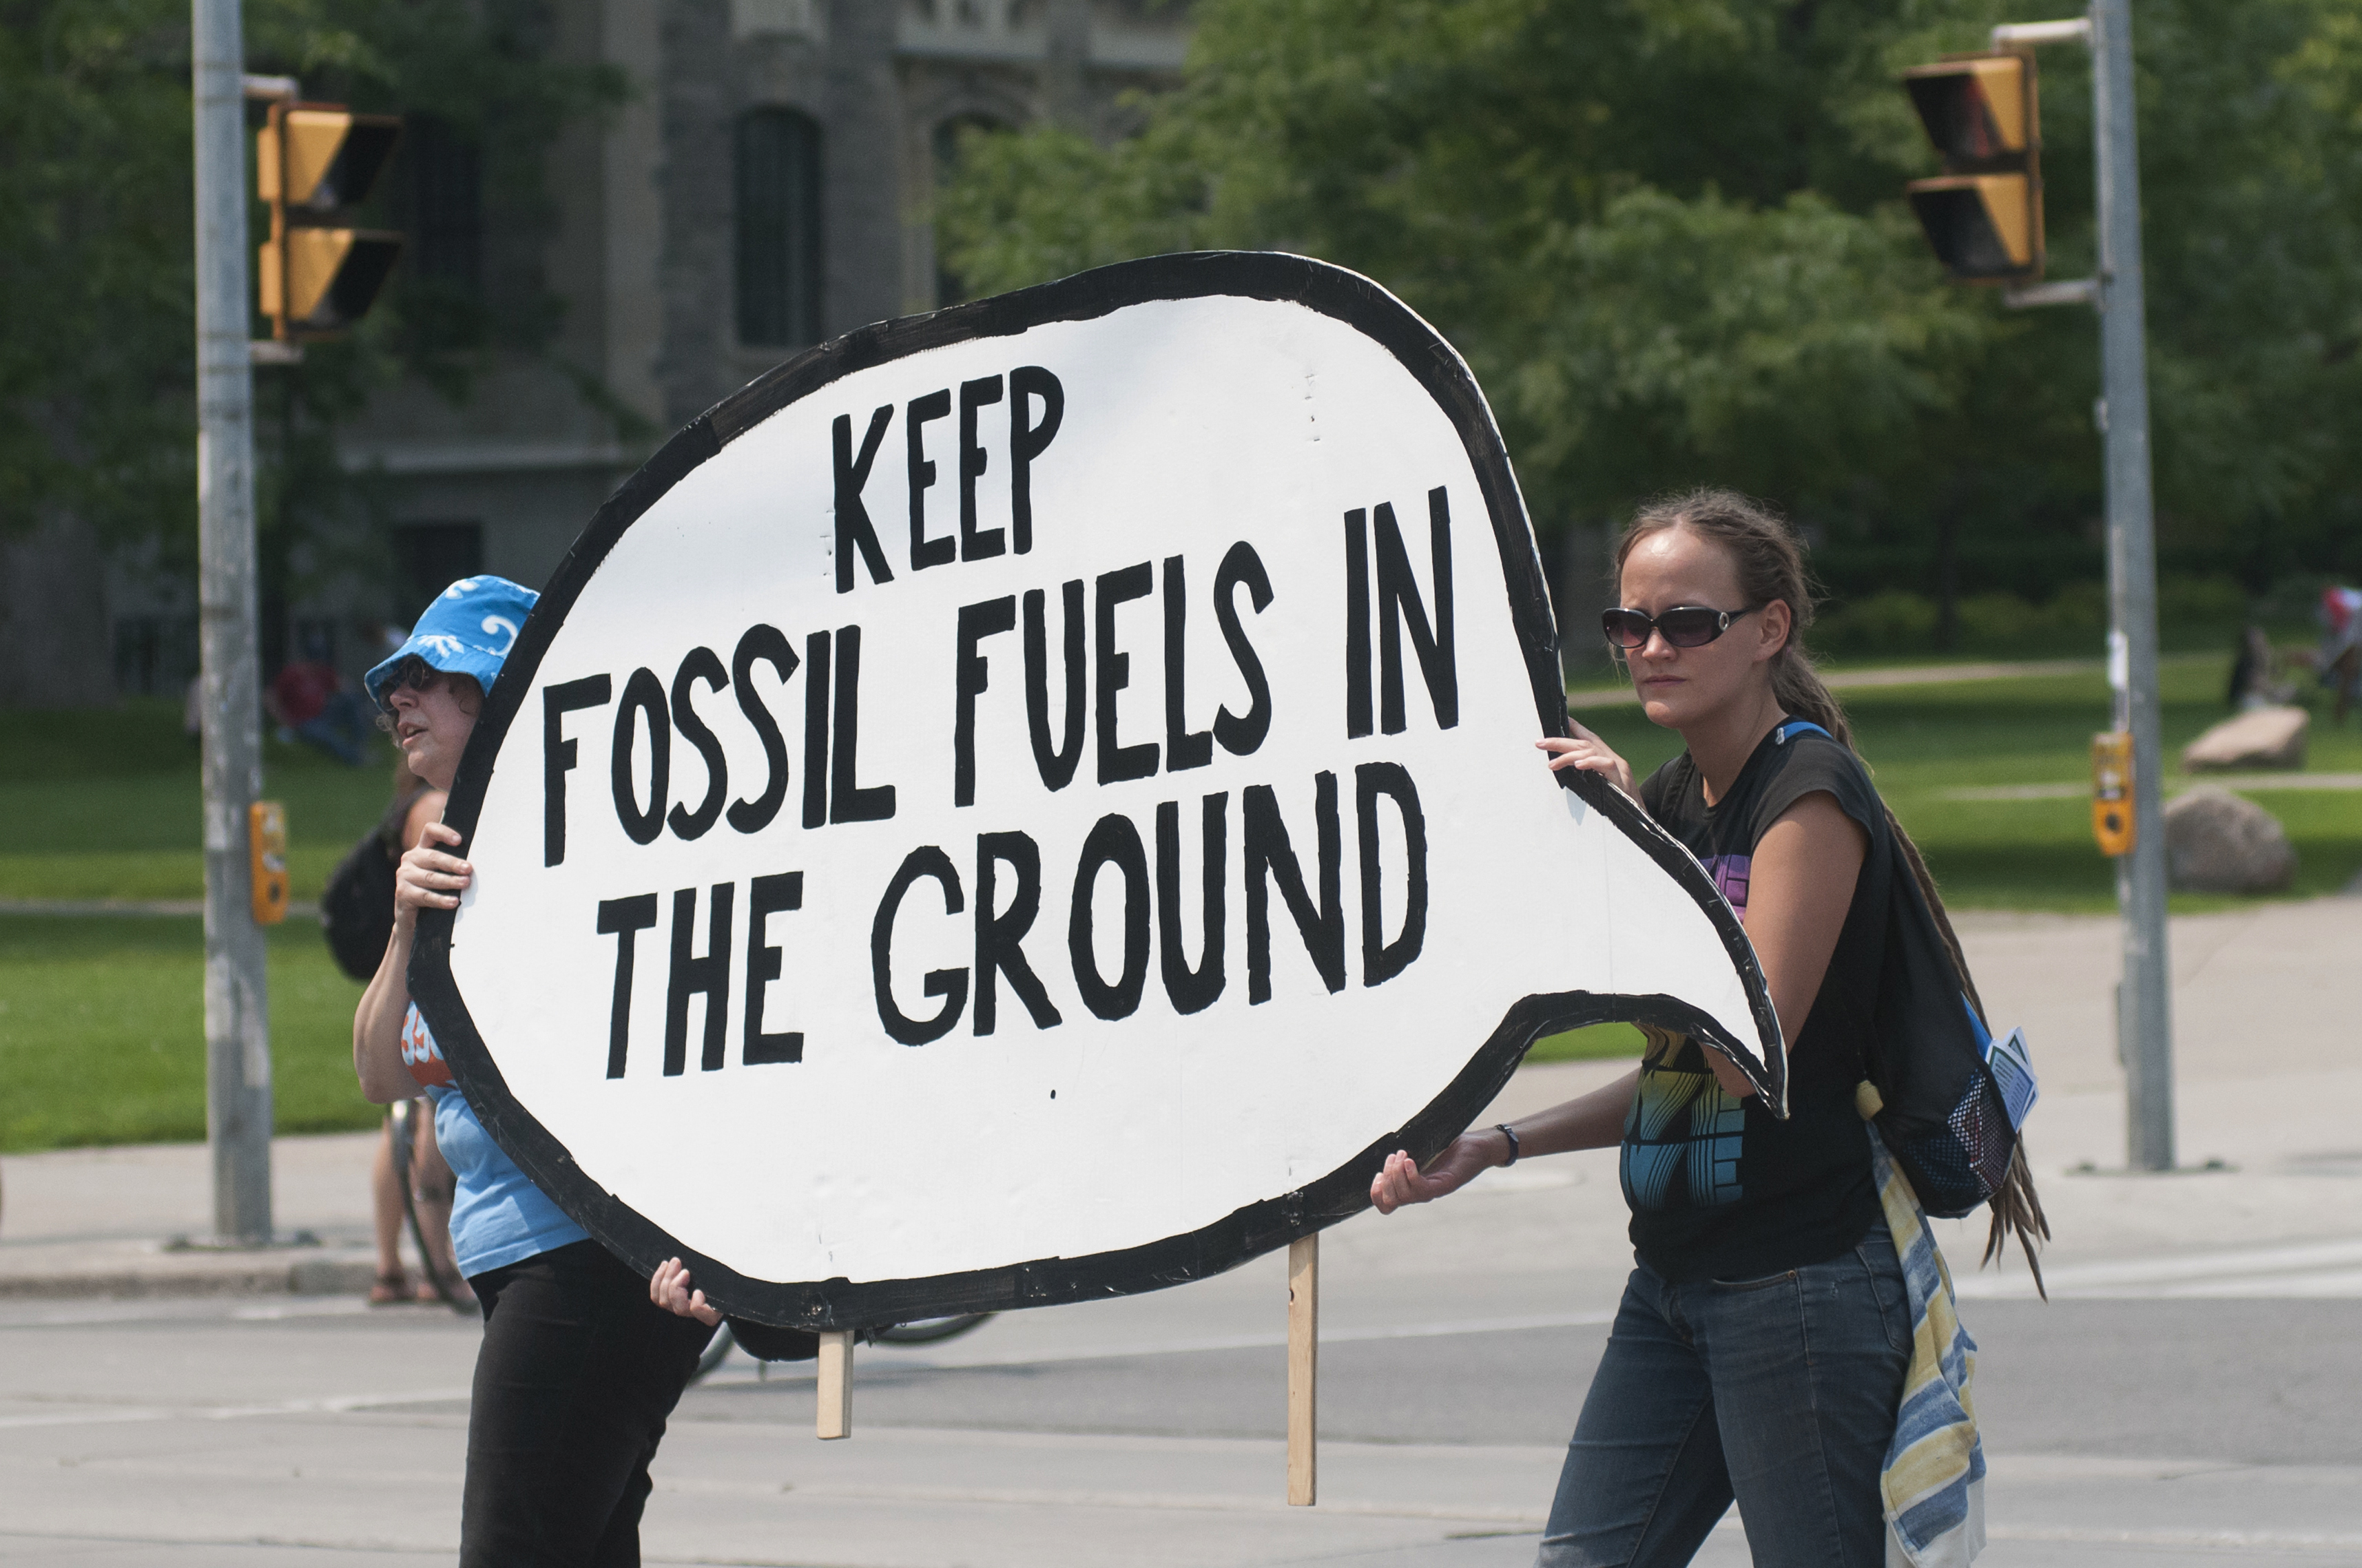 The green fossil-fuel divestment crusade hurts the poor & middle class